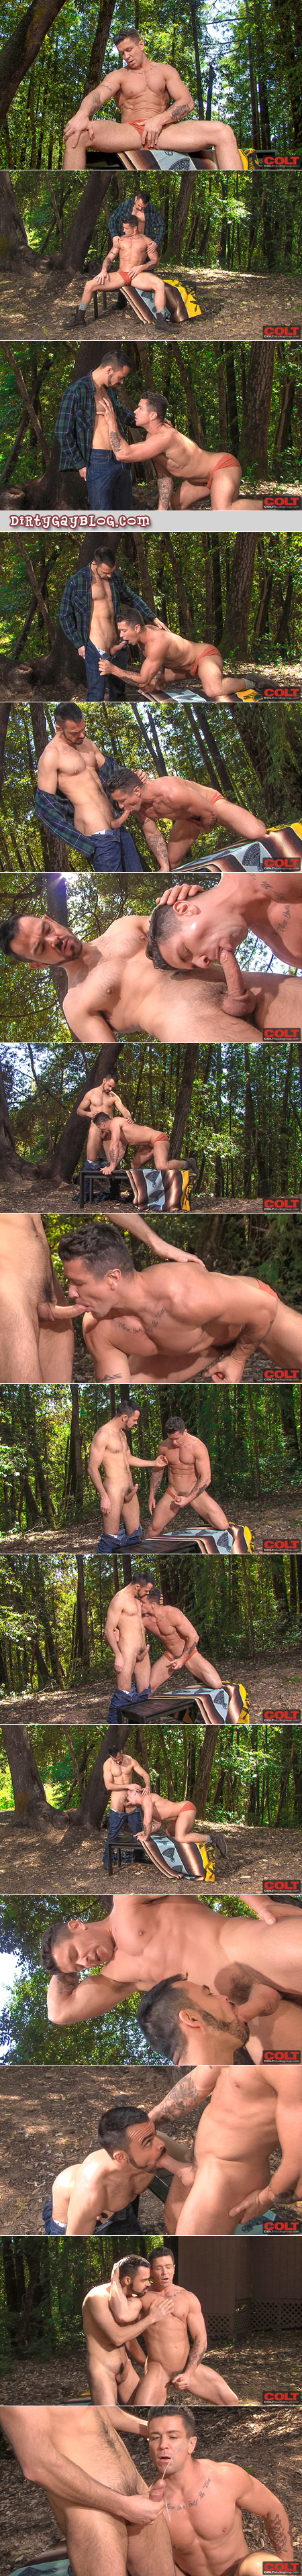 Two muscular men in the woods suck each other's cocks and shoot huge loads of semen.